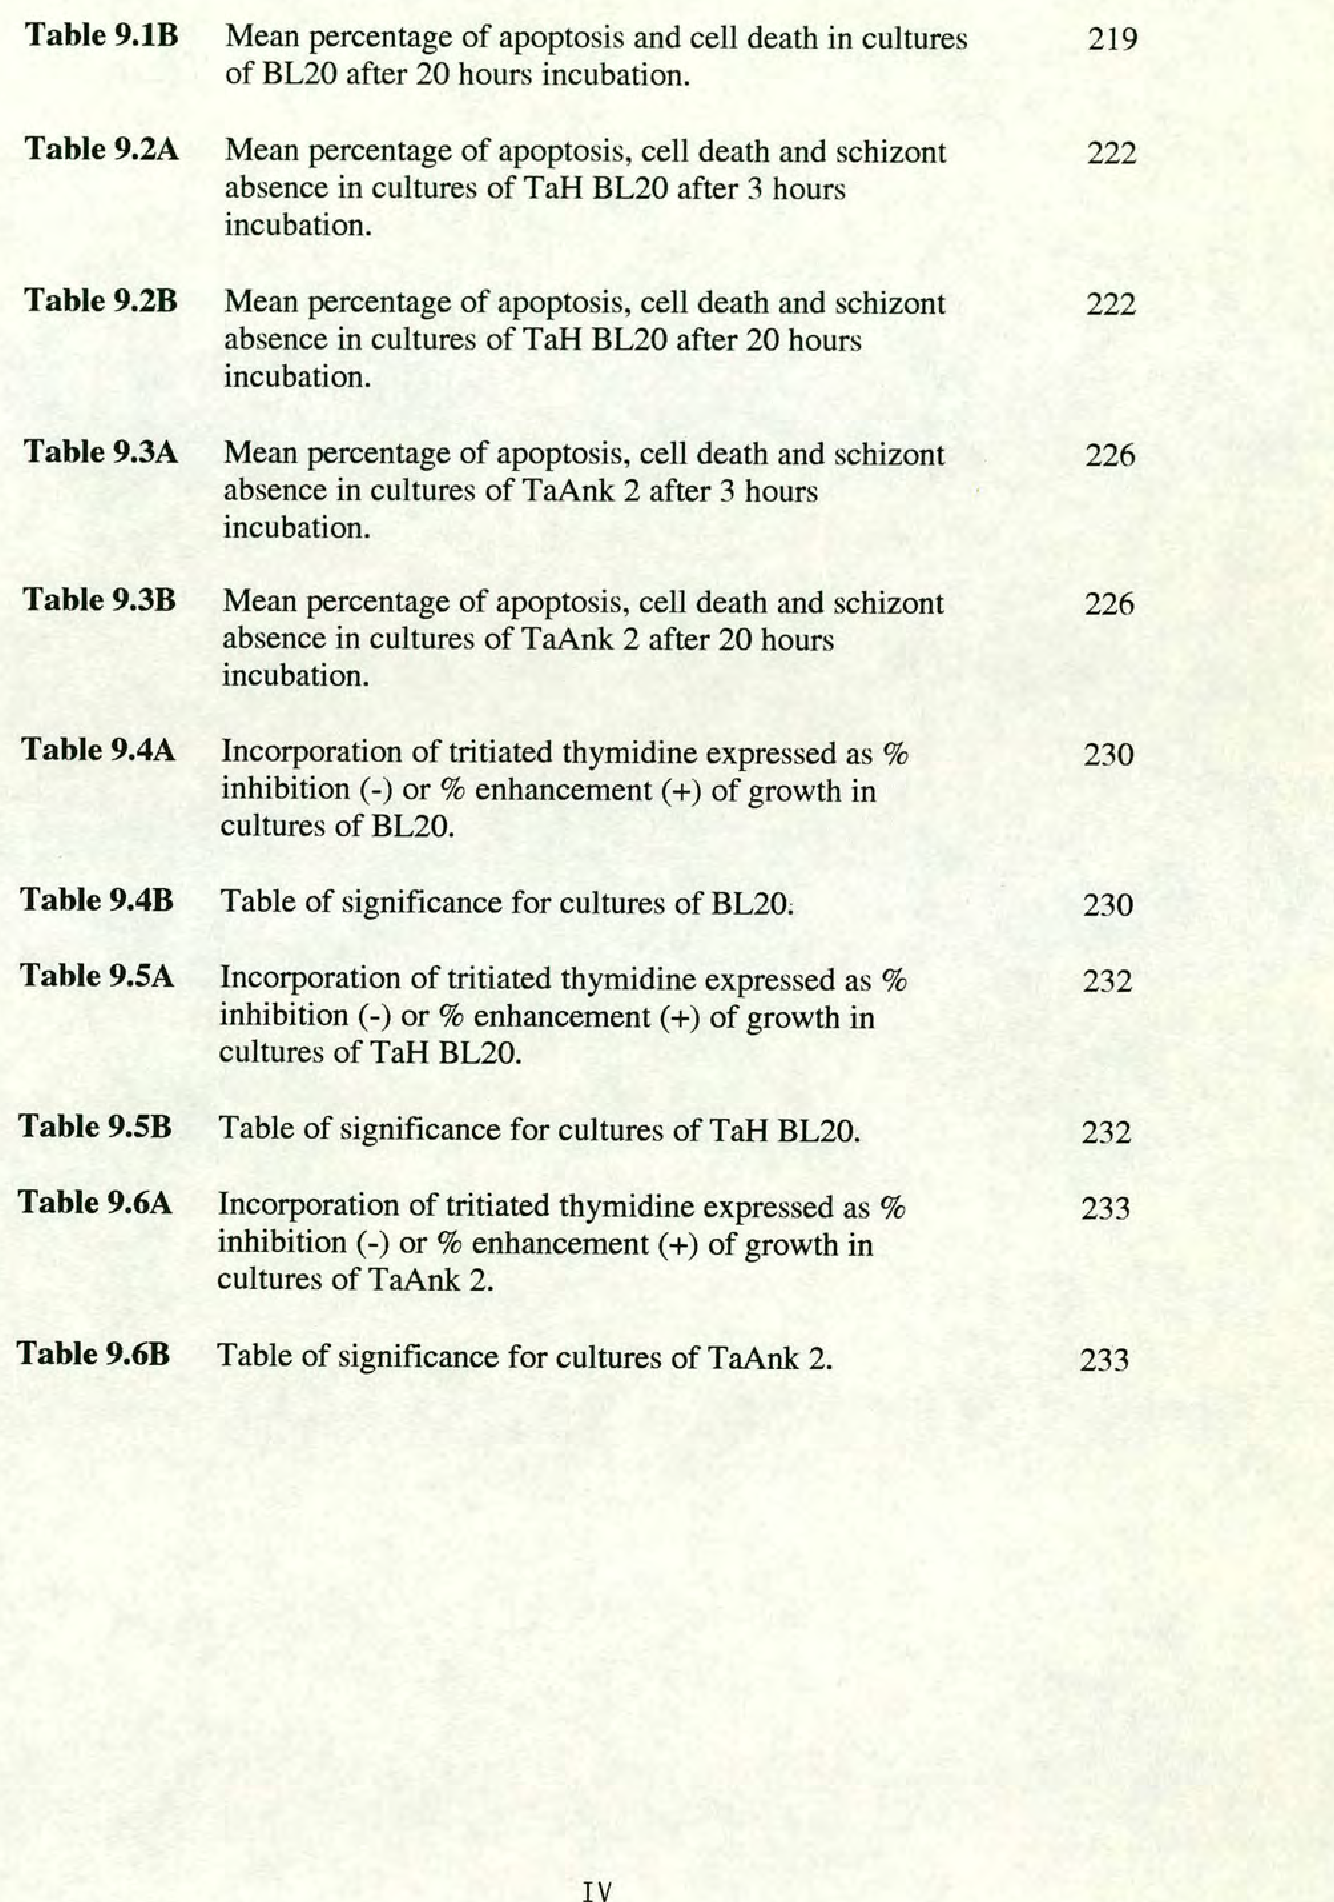 table 9.6